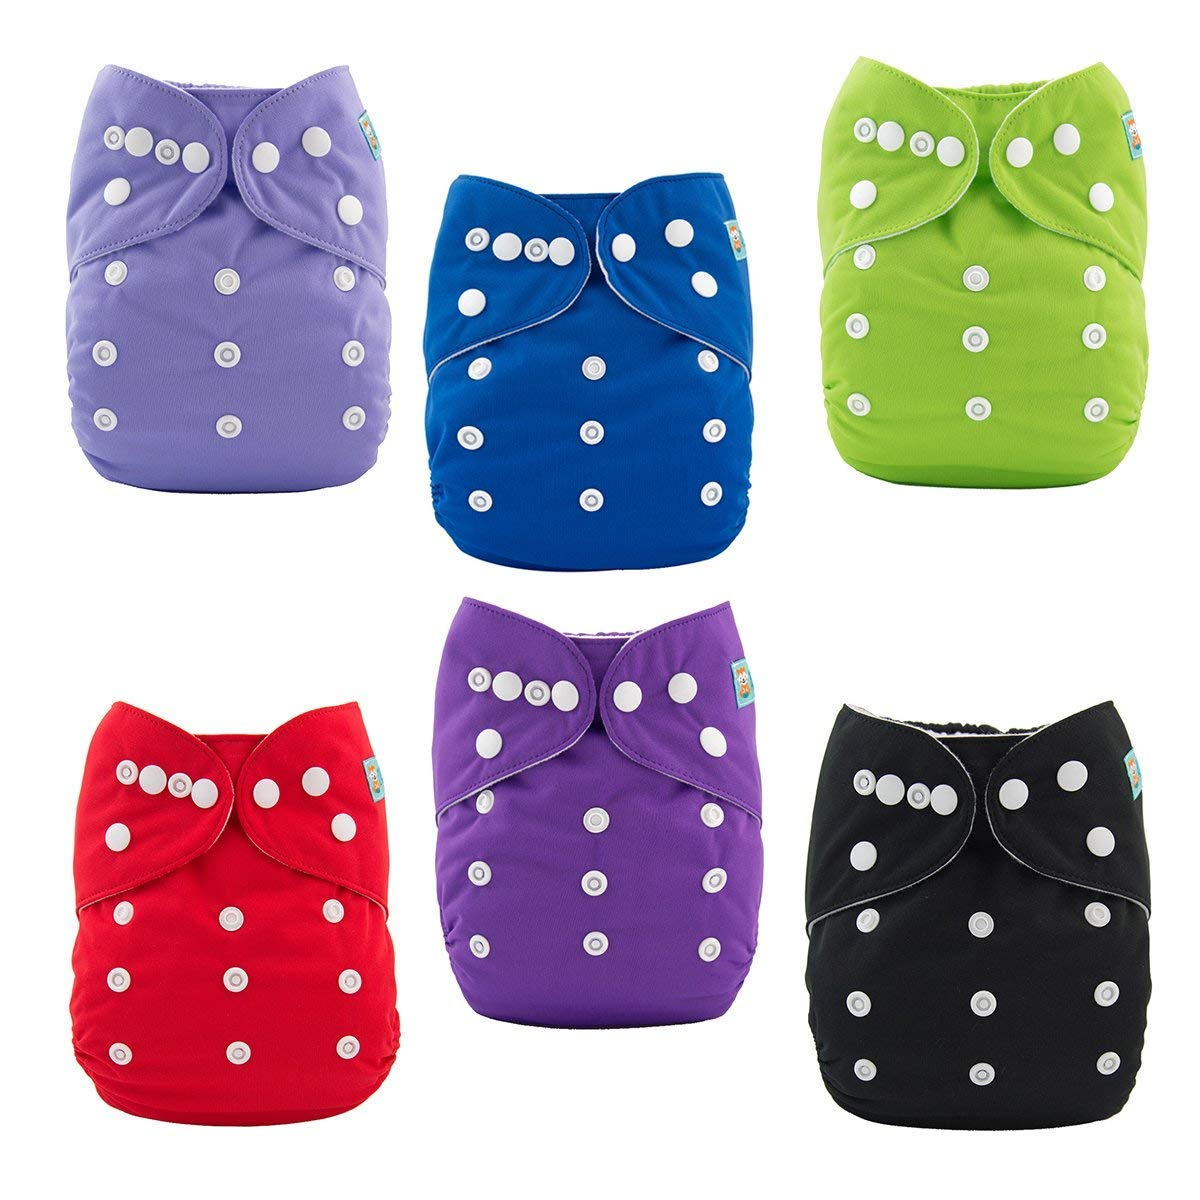 AlLVABABY Cloth Diapers Pocket Washable Adjustable Reuseable Cloth ...